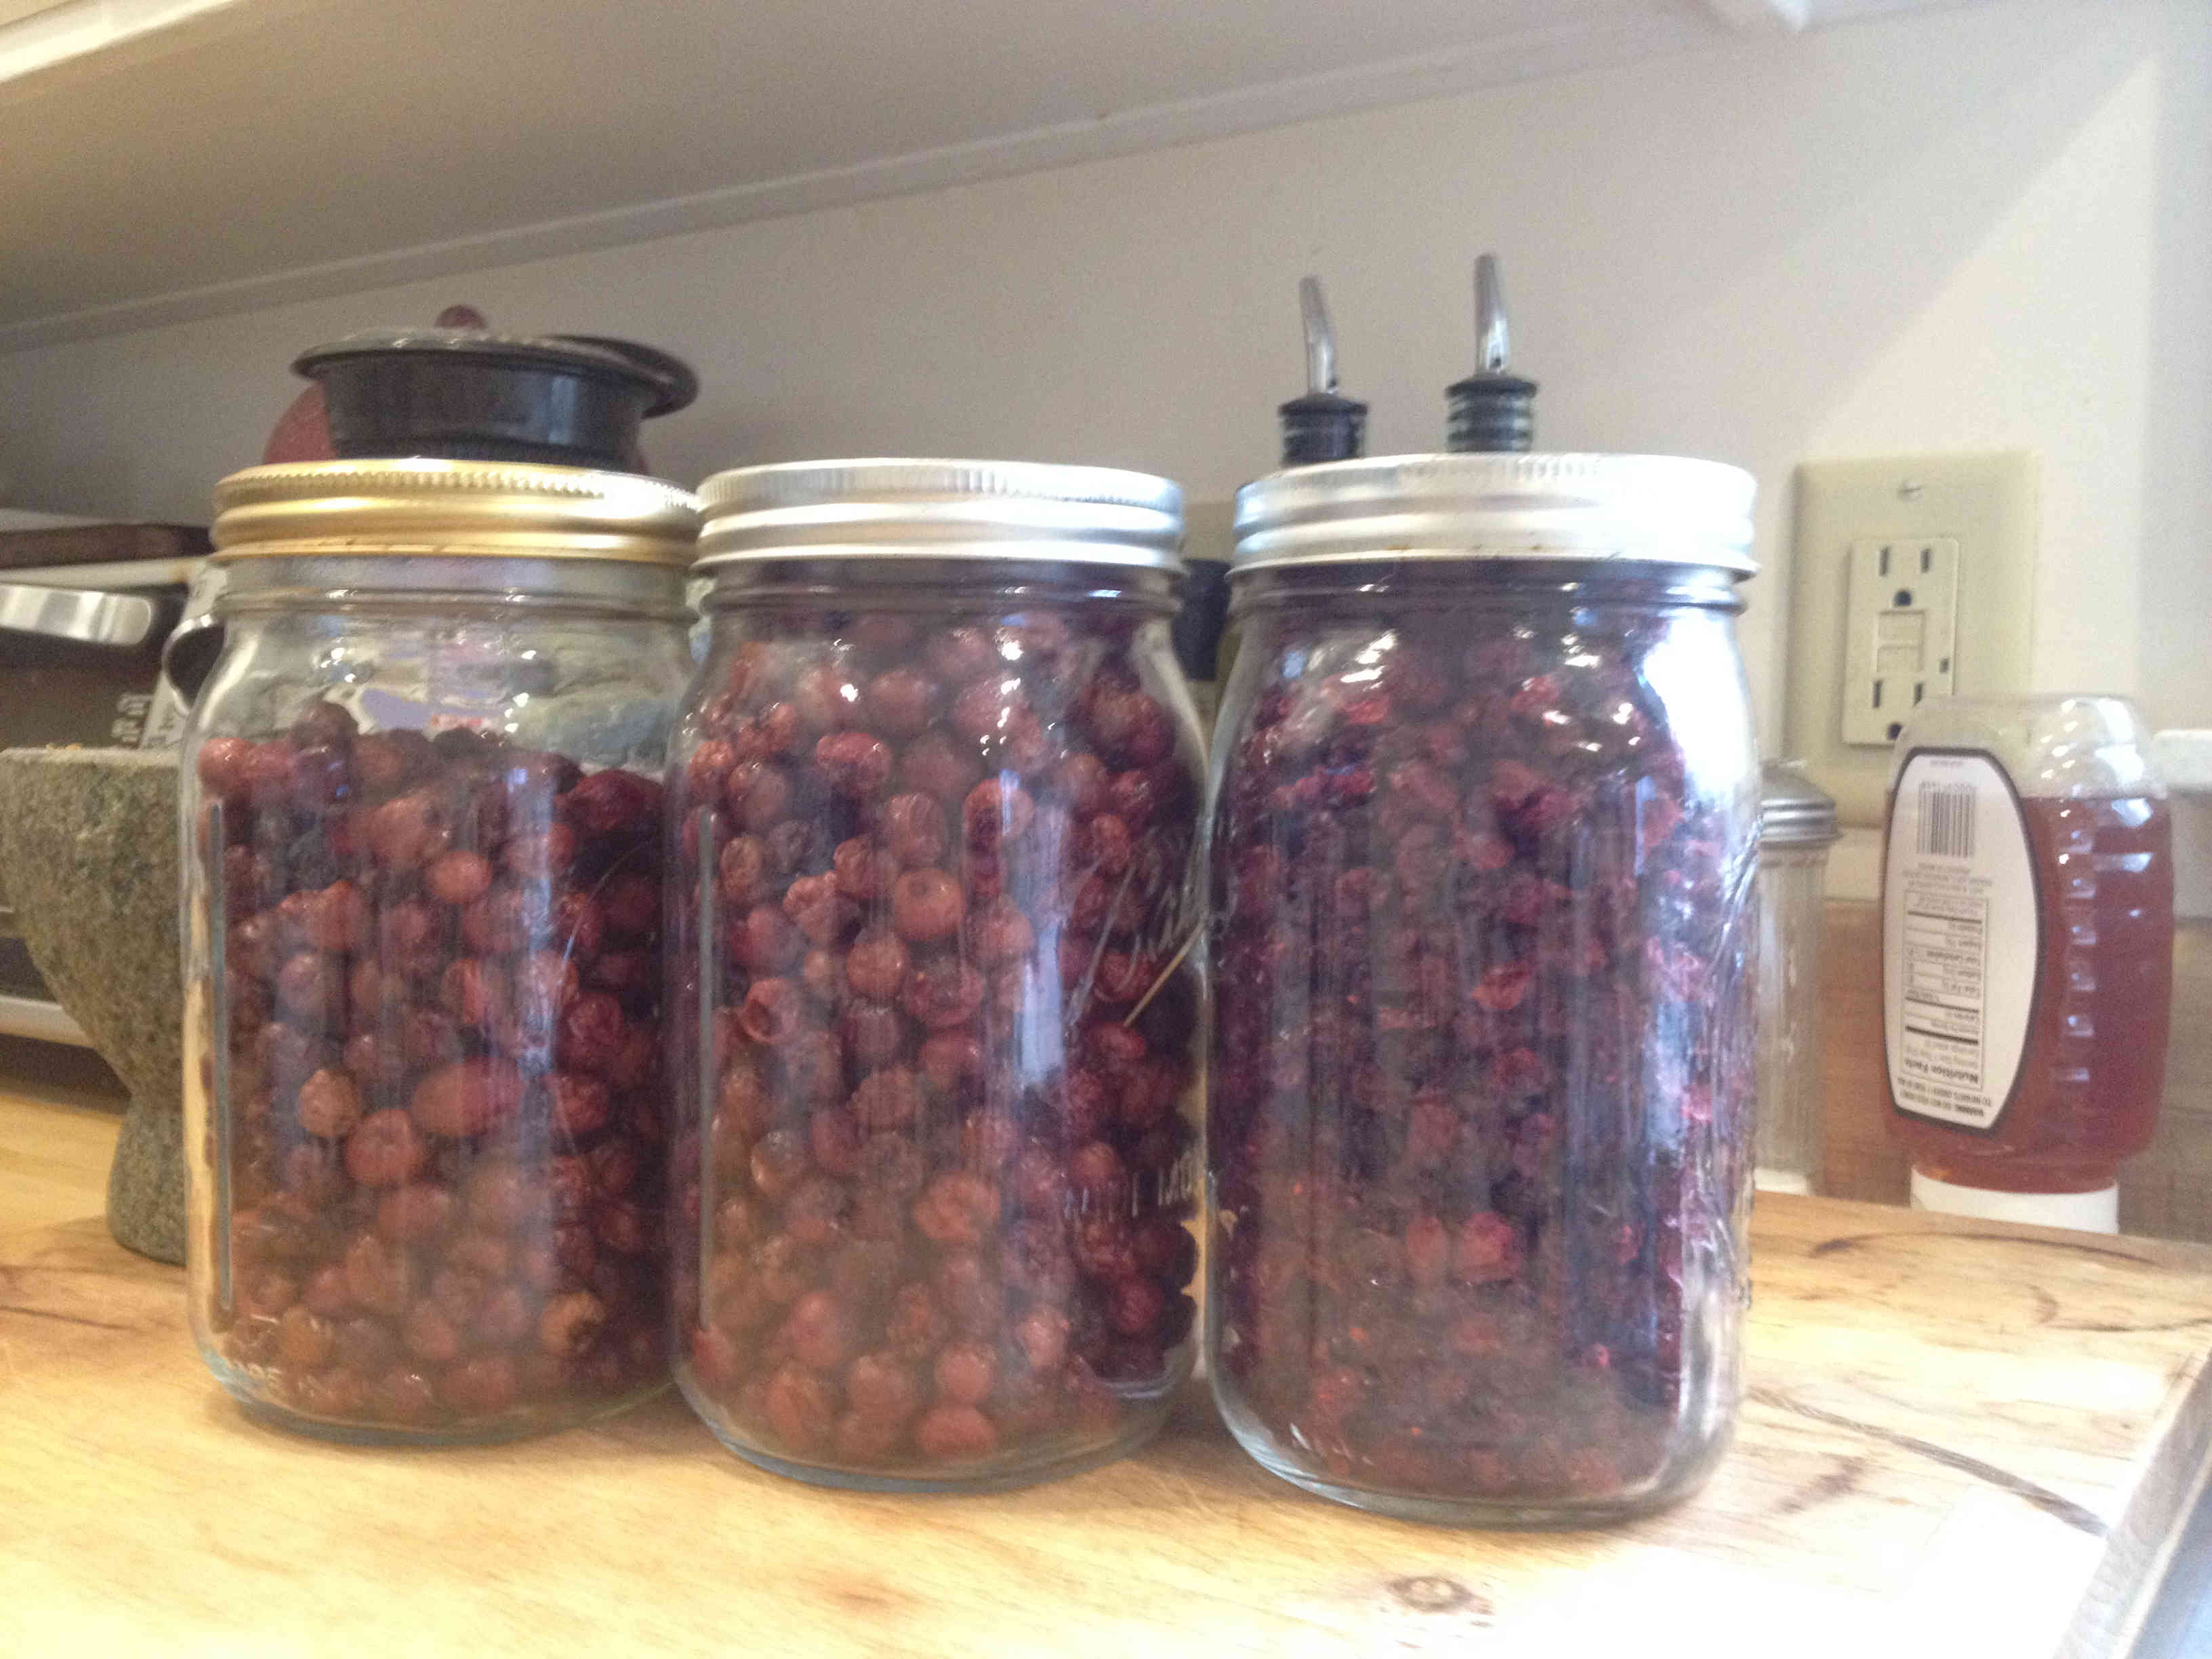 Cranberries Dehydrated in Jars